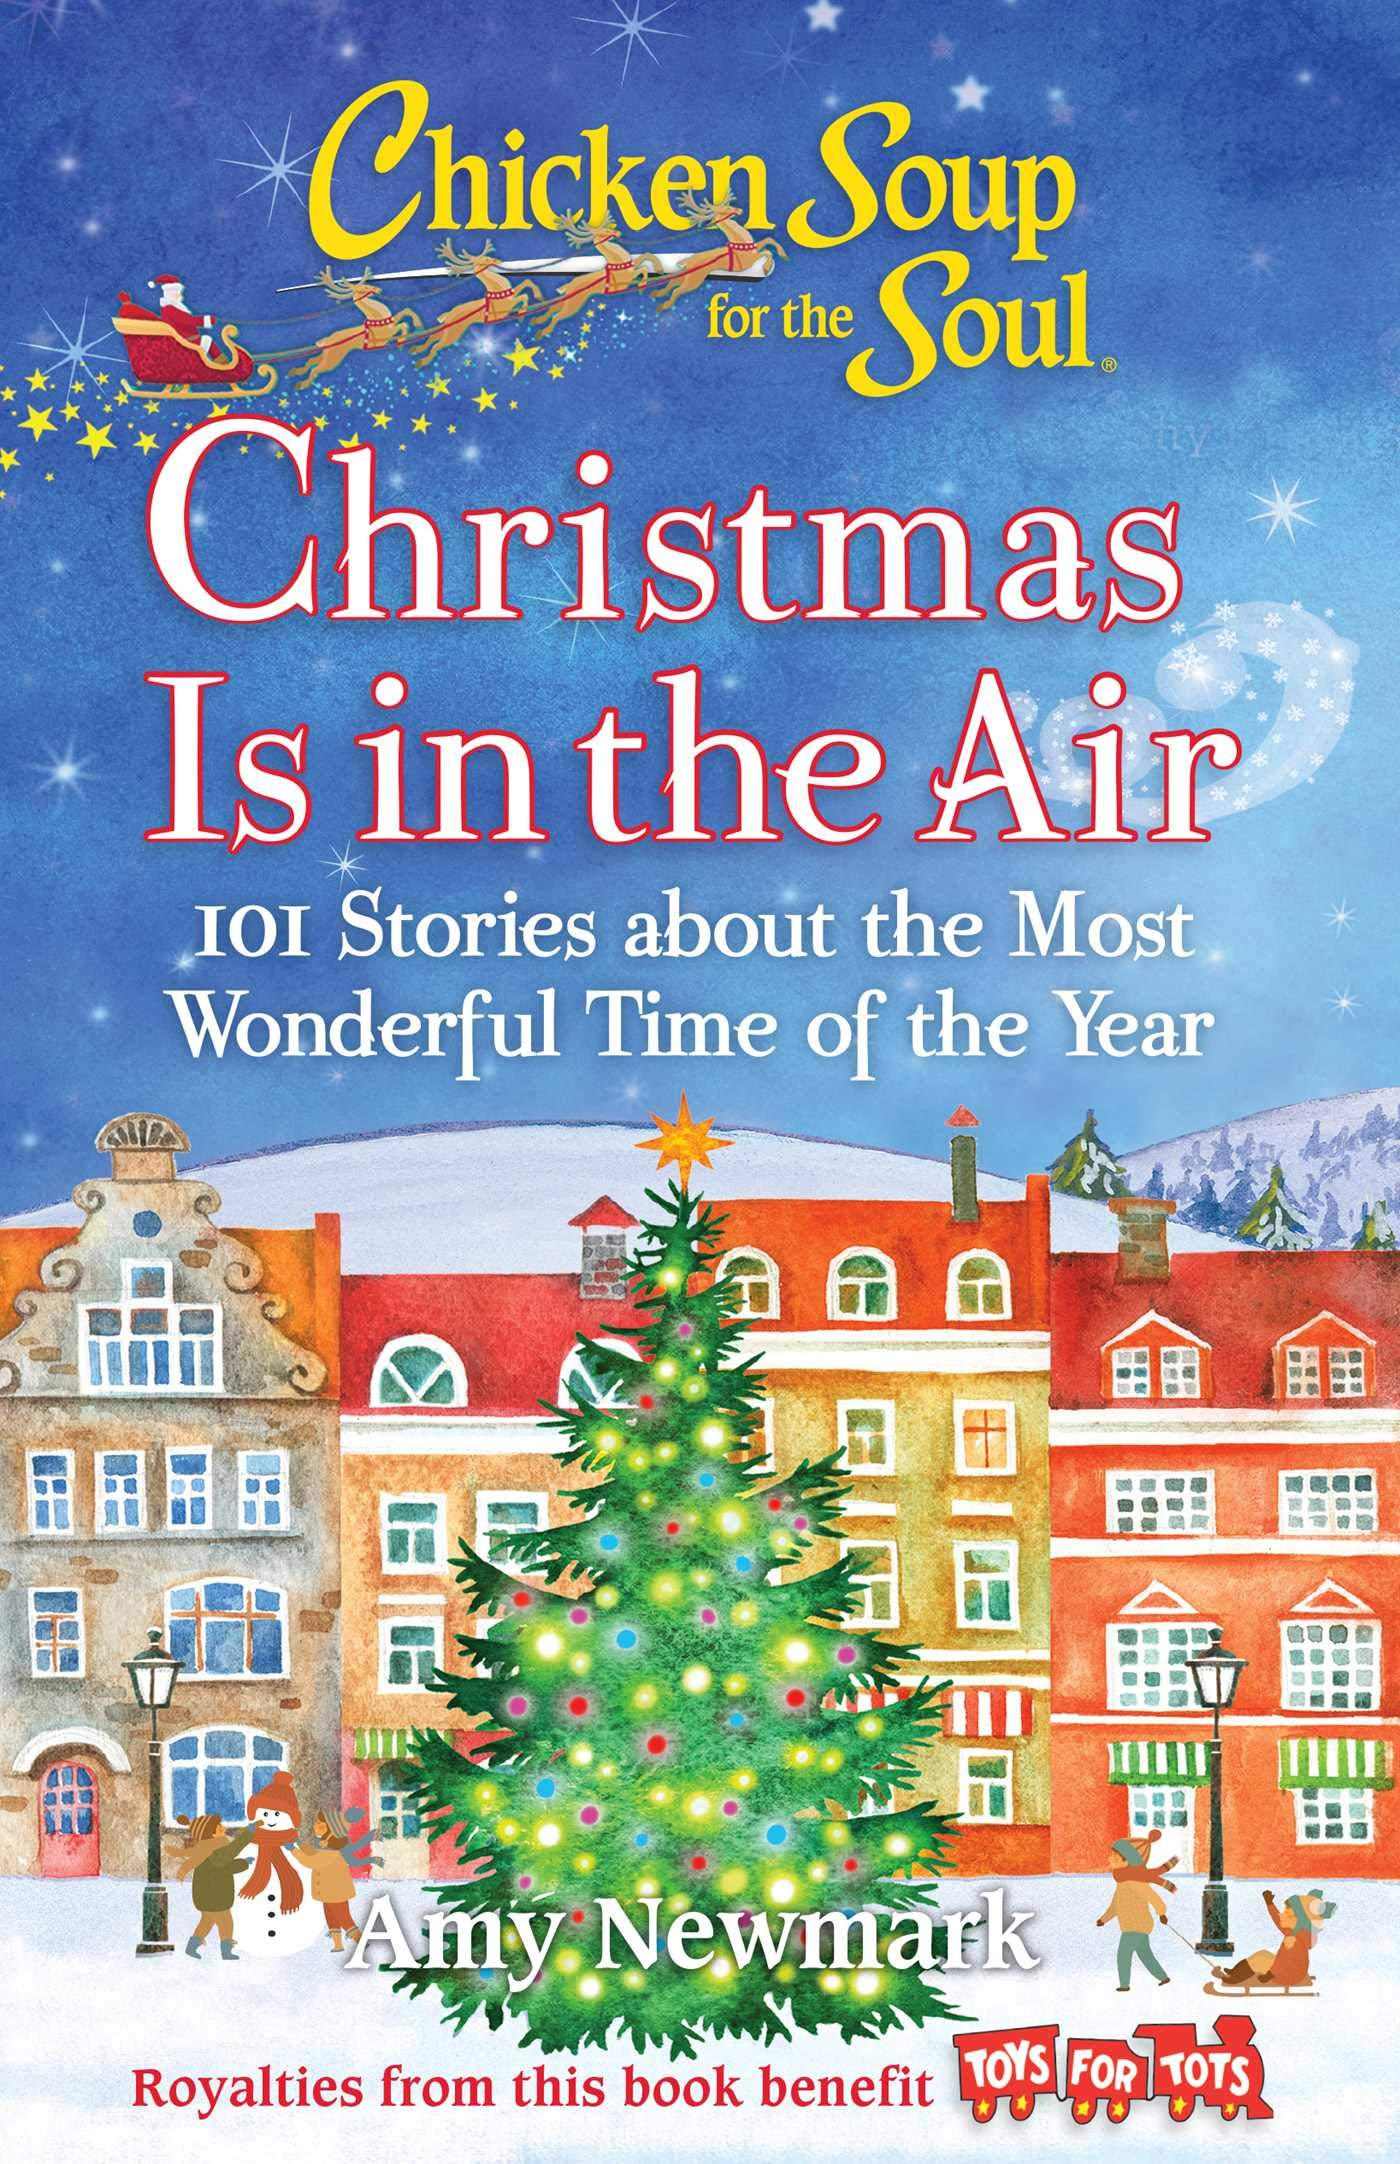 Chicken Soup For The Soul Christmas 2020 Chicken Soup for the Soul: Christmas Is in the Air: 101 Stories